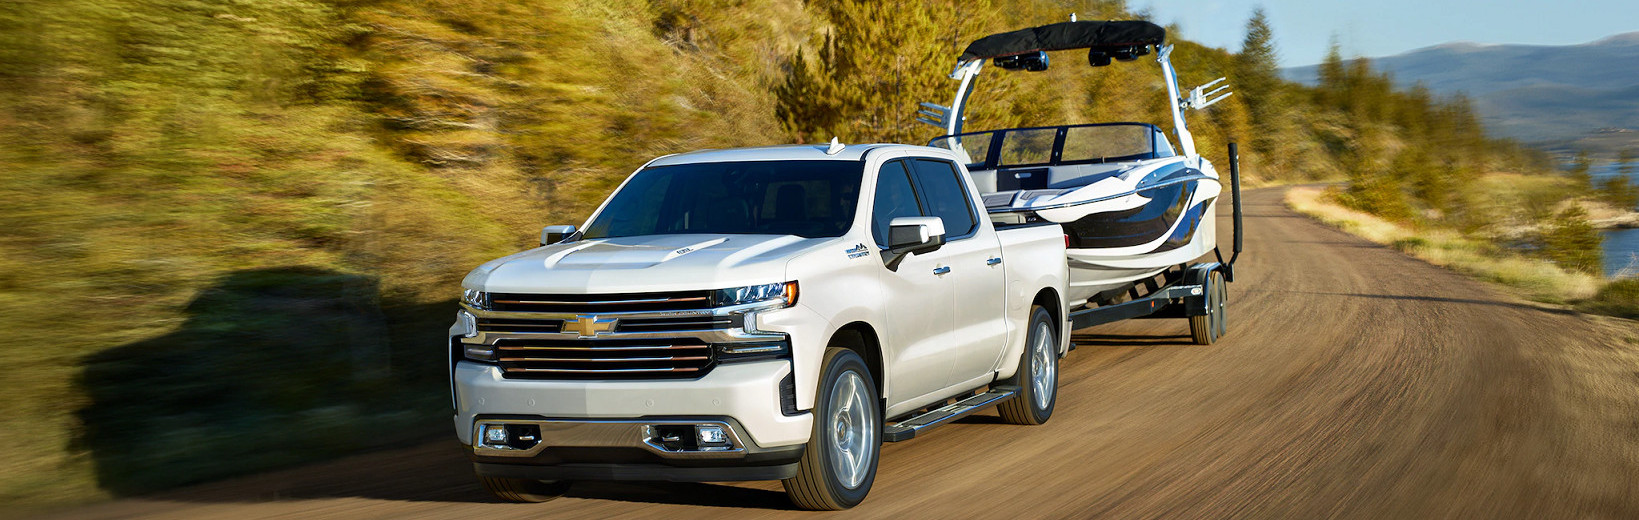 Used Chevrolet Trucks for Sale near Rochester, NY